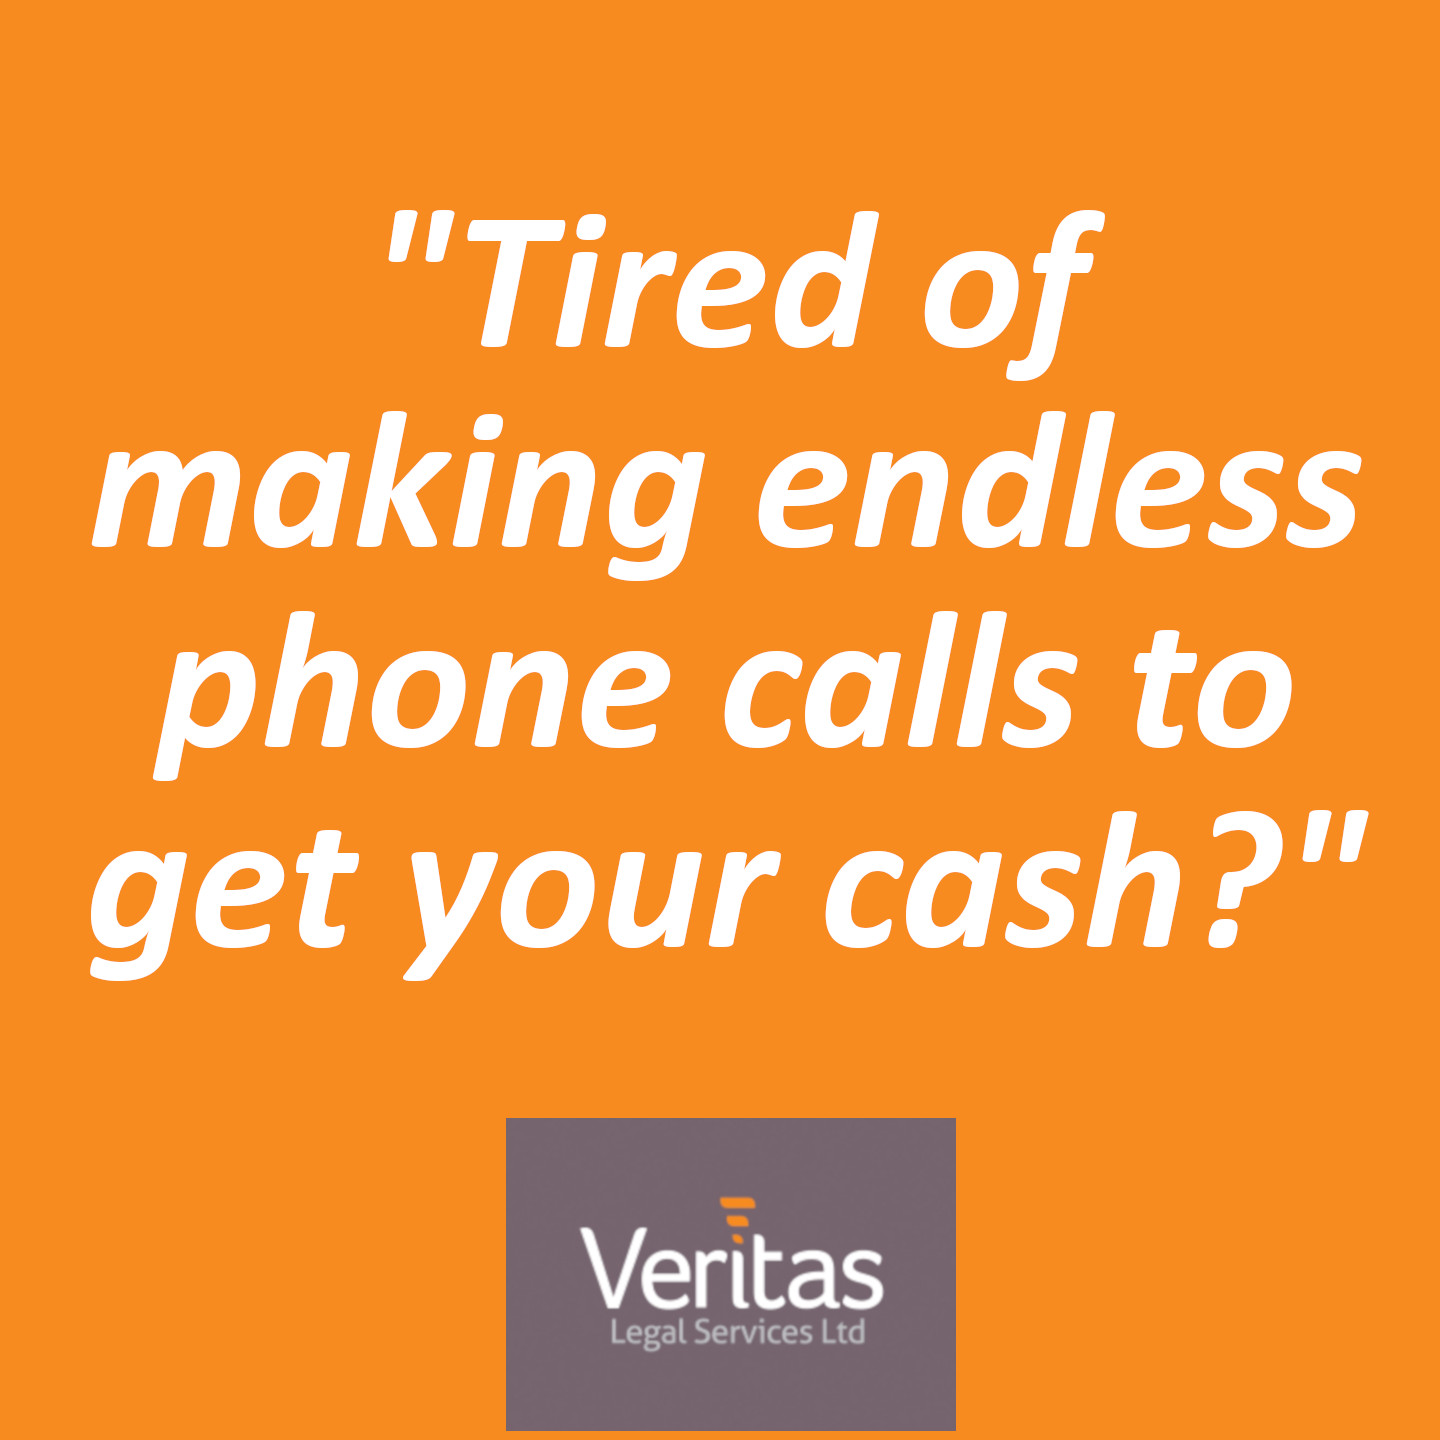 tired of making endless phone calls to get your money